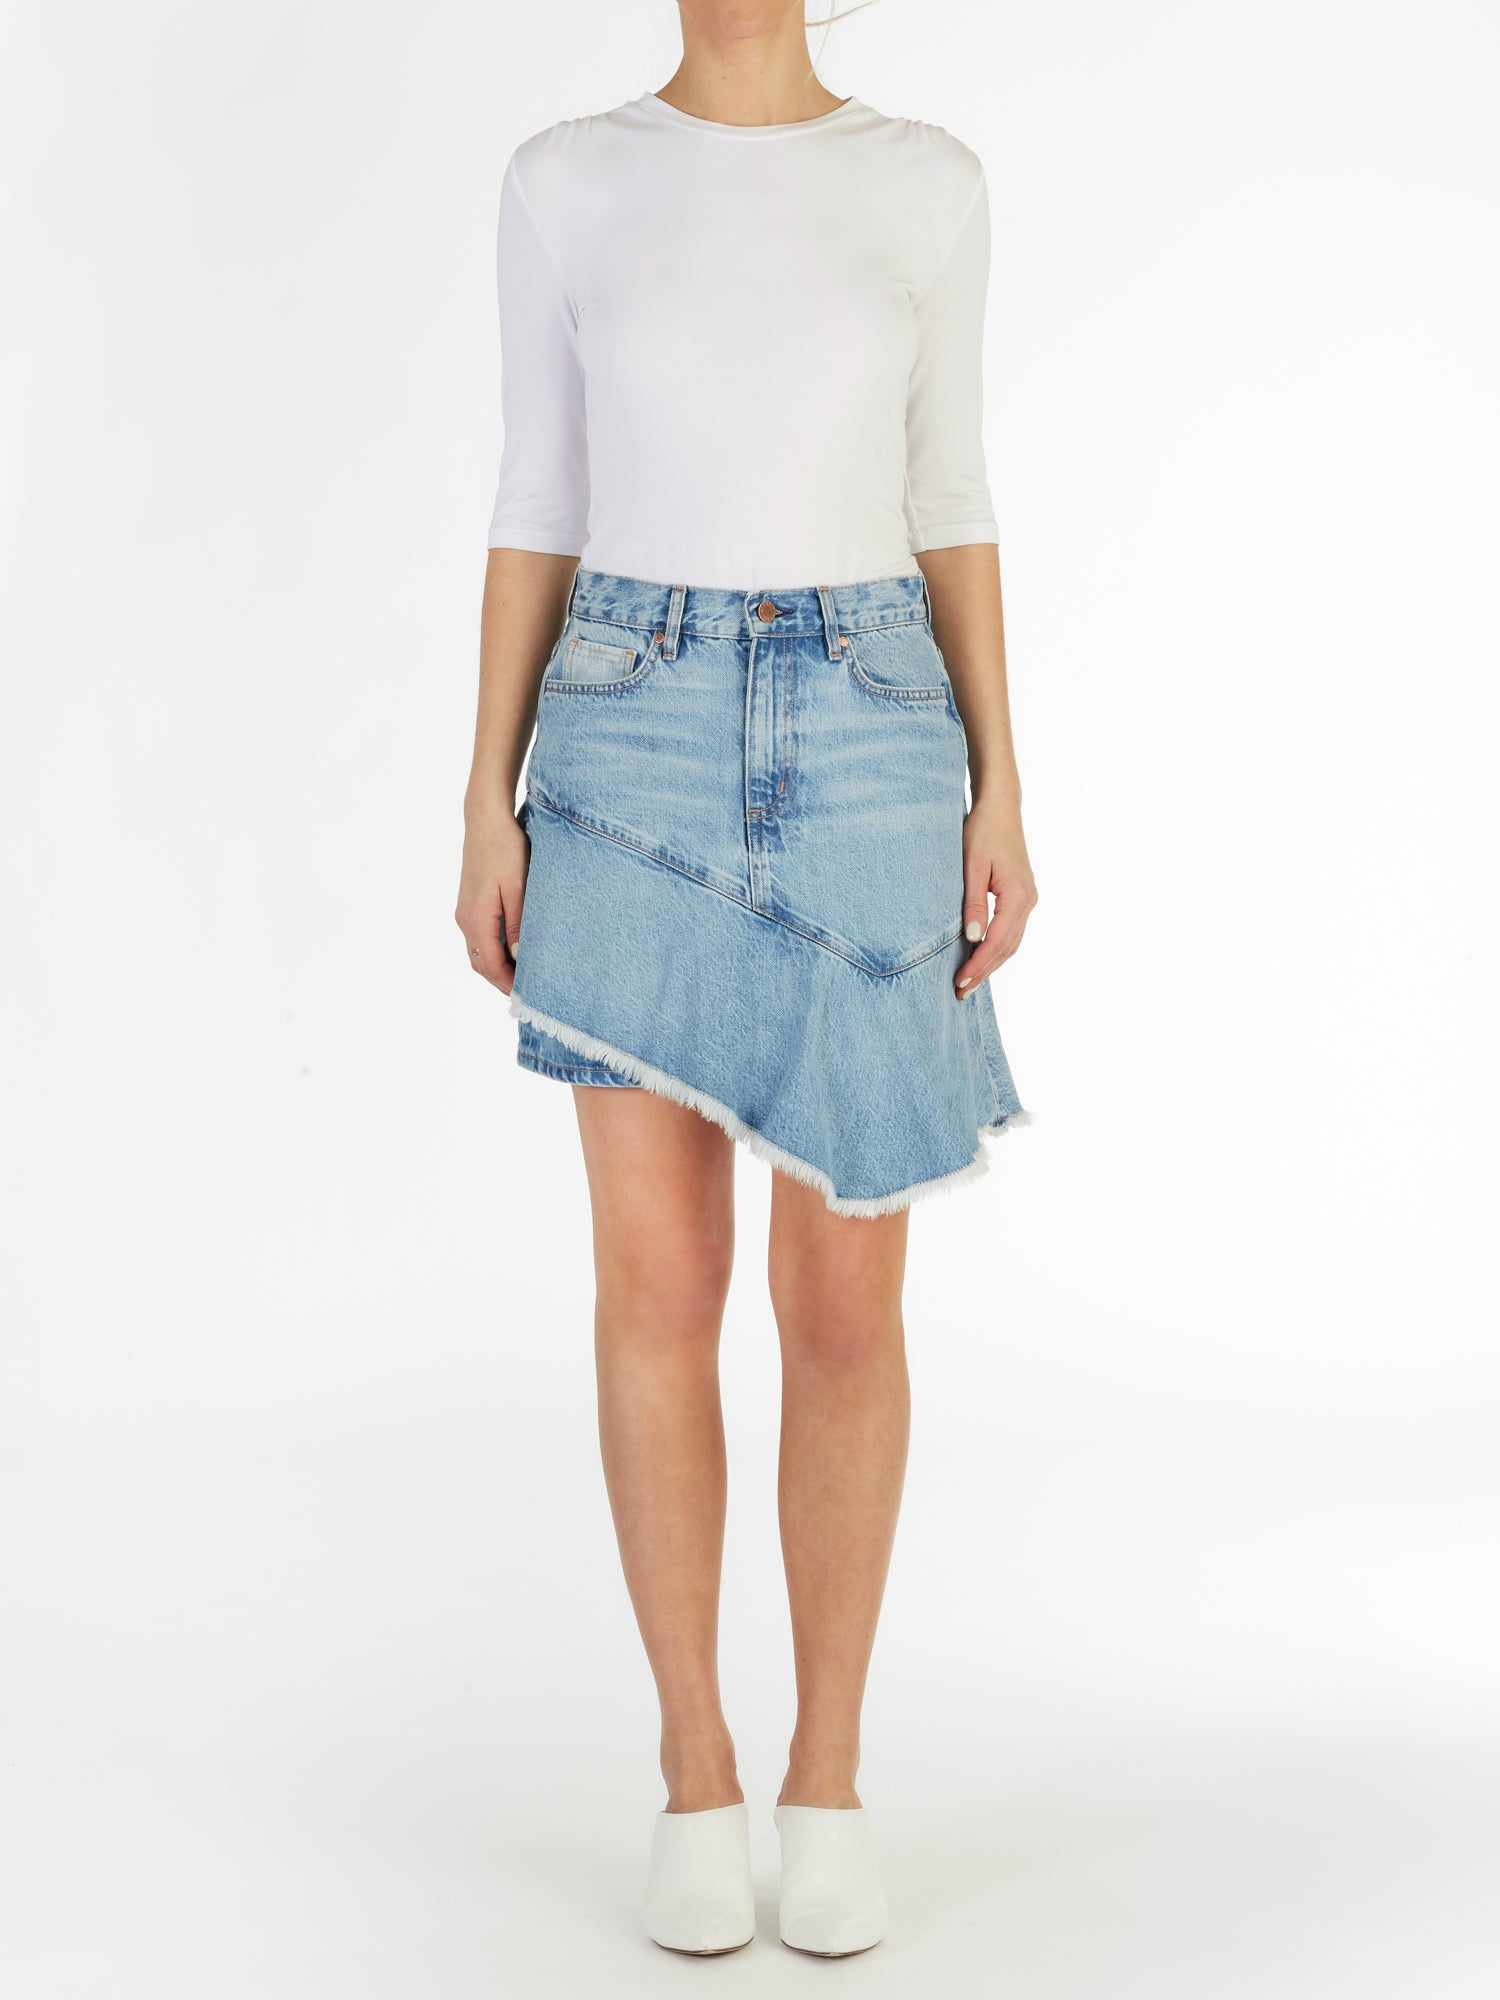 Asymmetric Ruffle Skirt in Italian Denim